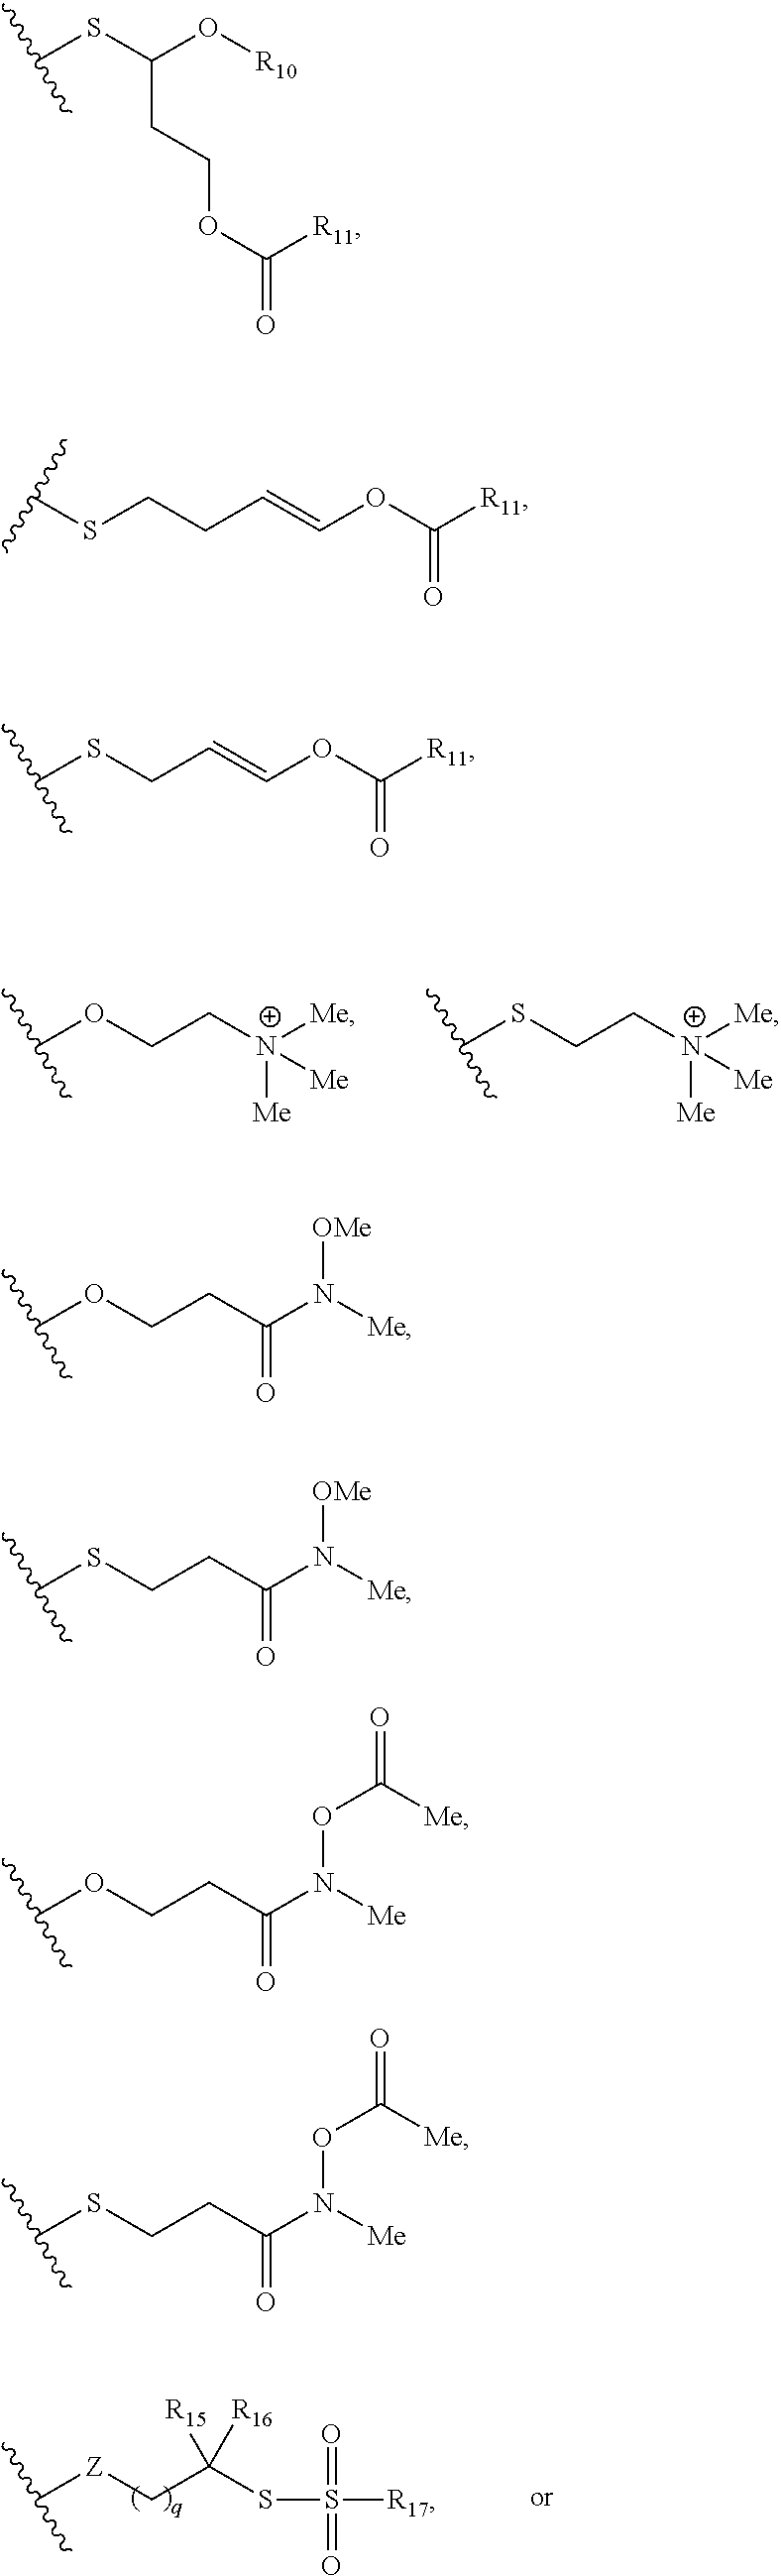 Us20120316224a1 Novel Nucleic Acid Prodrugs And Methods Of Use Displaying 20gt Images For Solution Science Example Figure 20121213 C00012